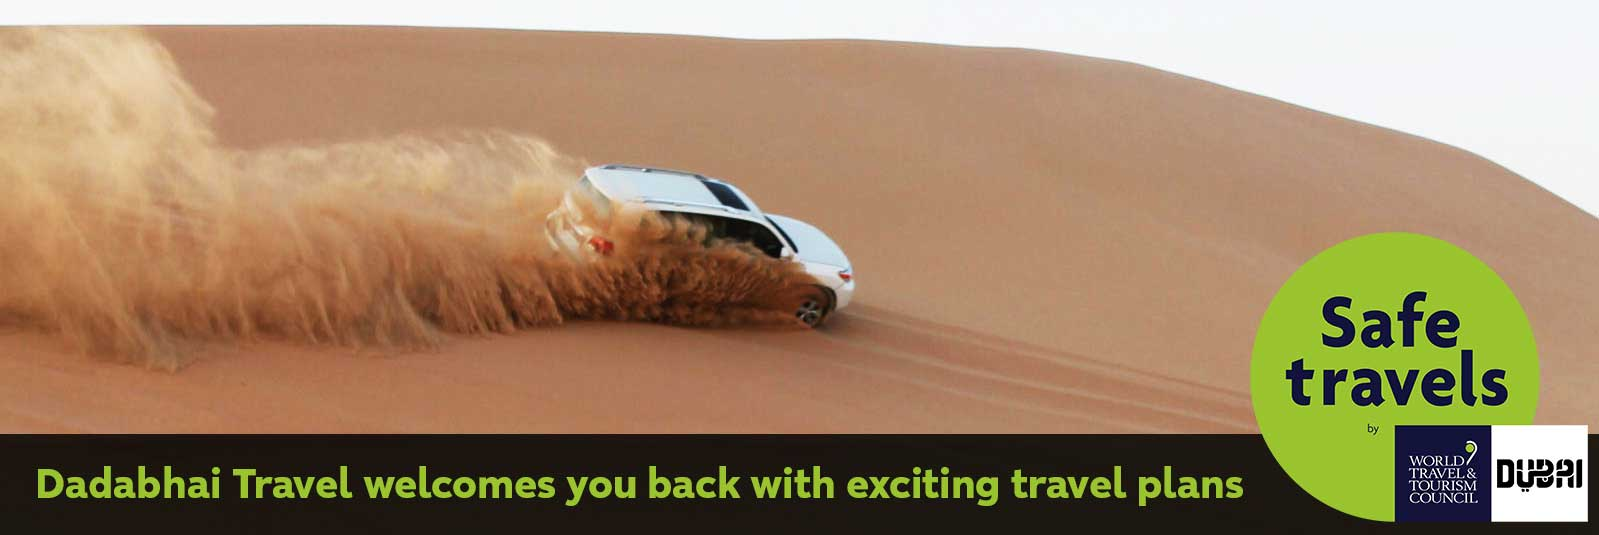 Dubai Safe Travels - Book Your Tickets & Package from Dadabhai Travel